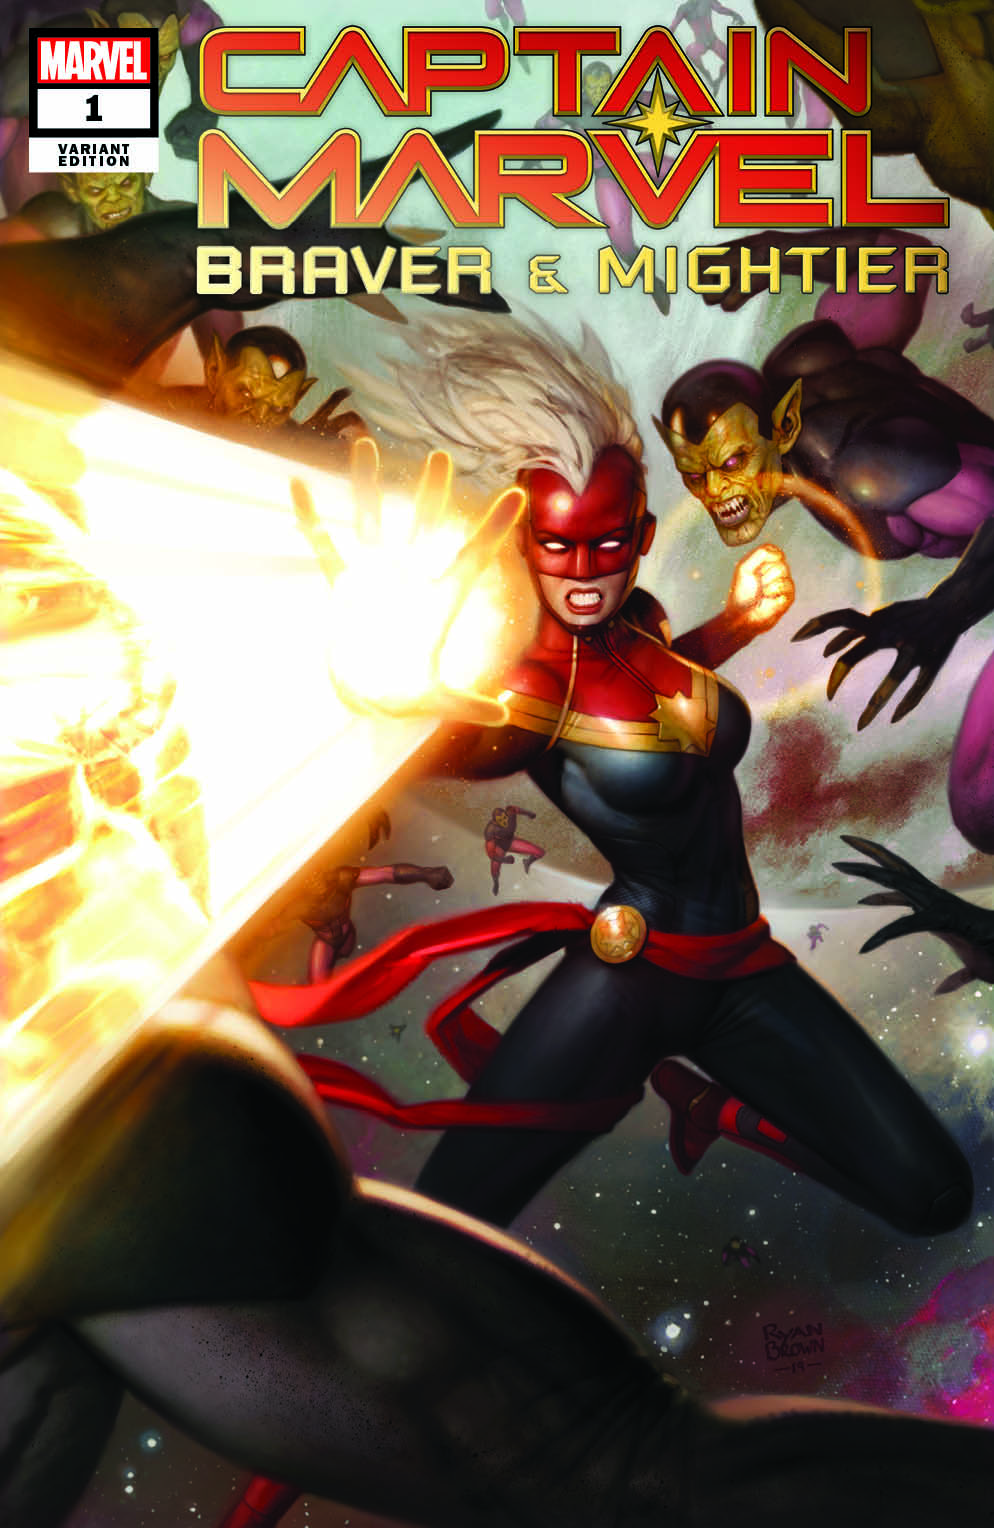 marvel and ebay team for exclusive captain marvel: braver